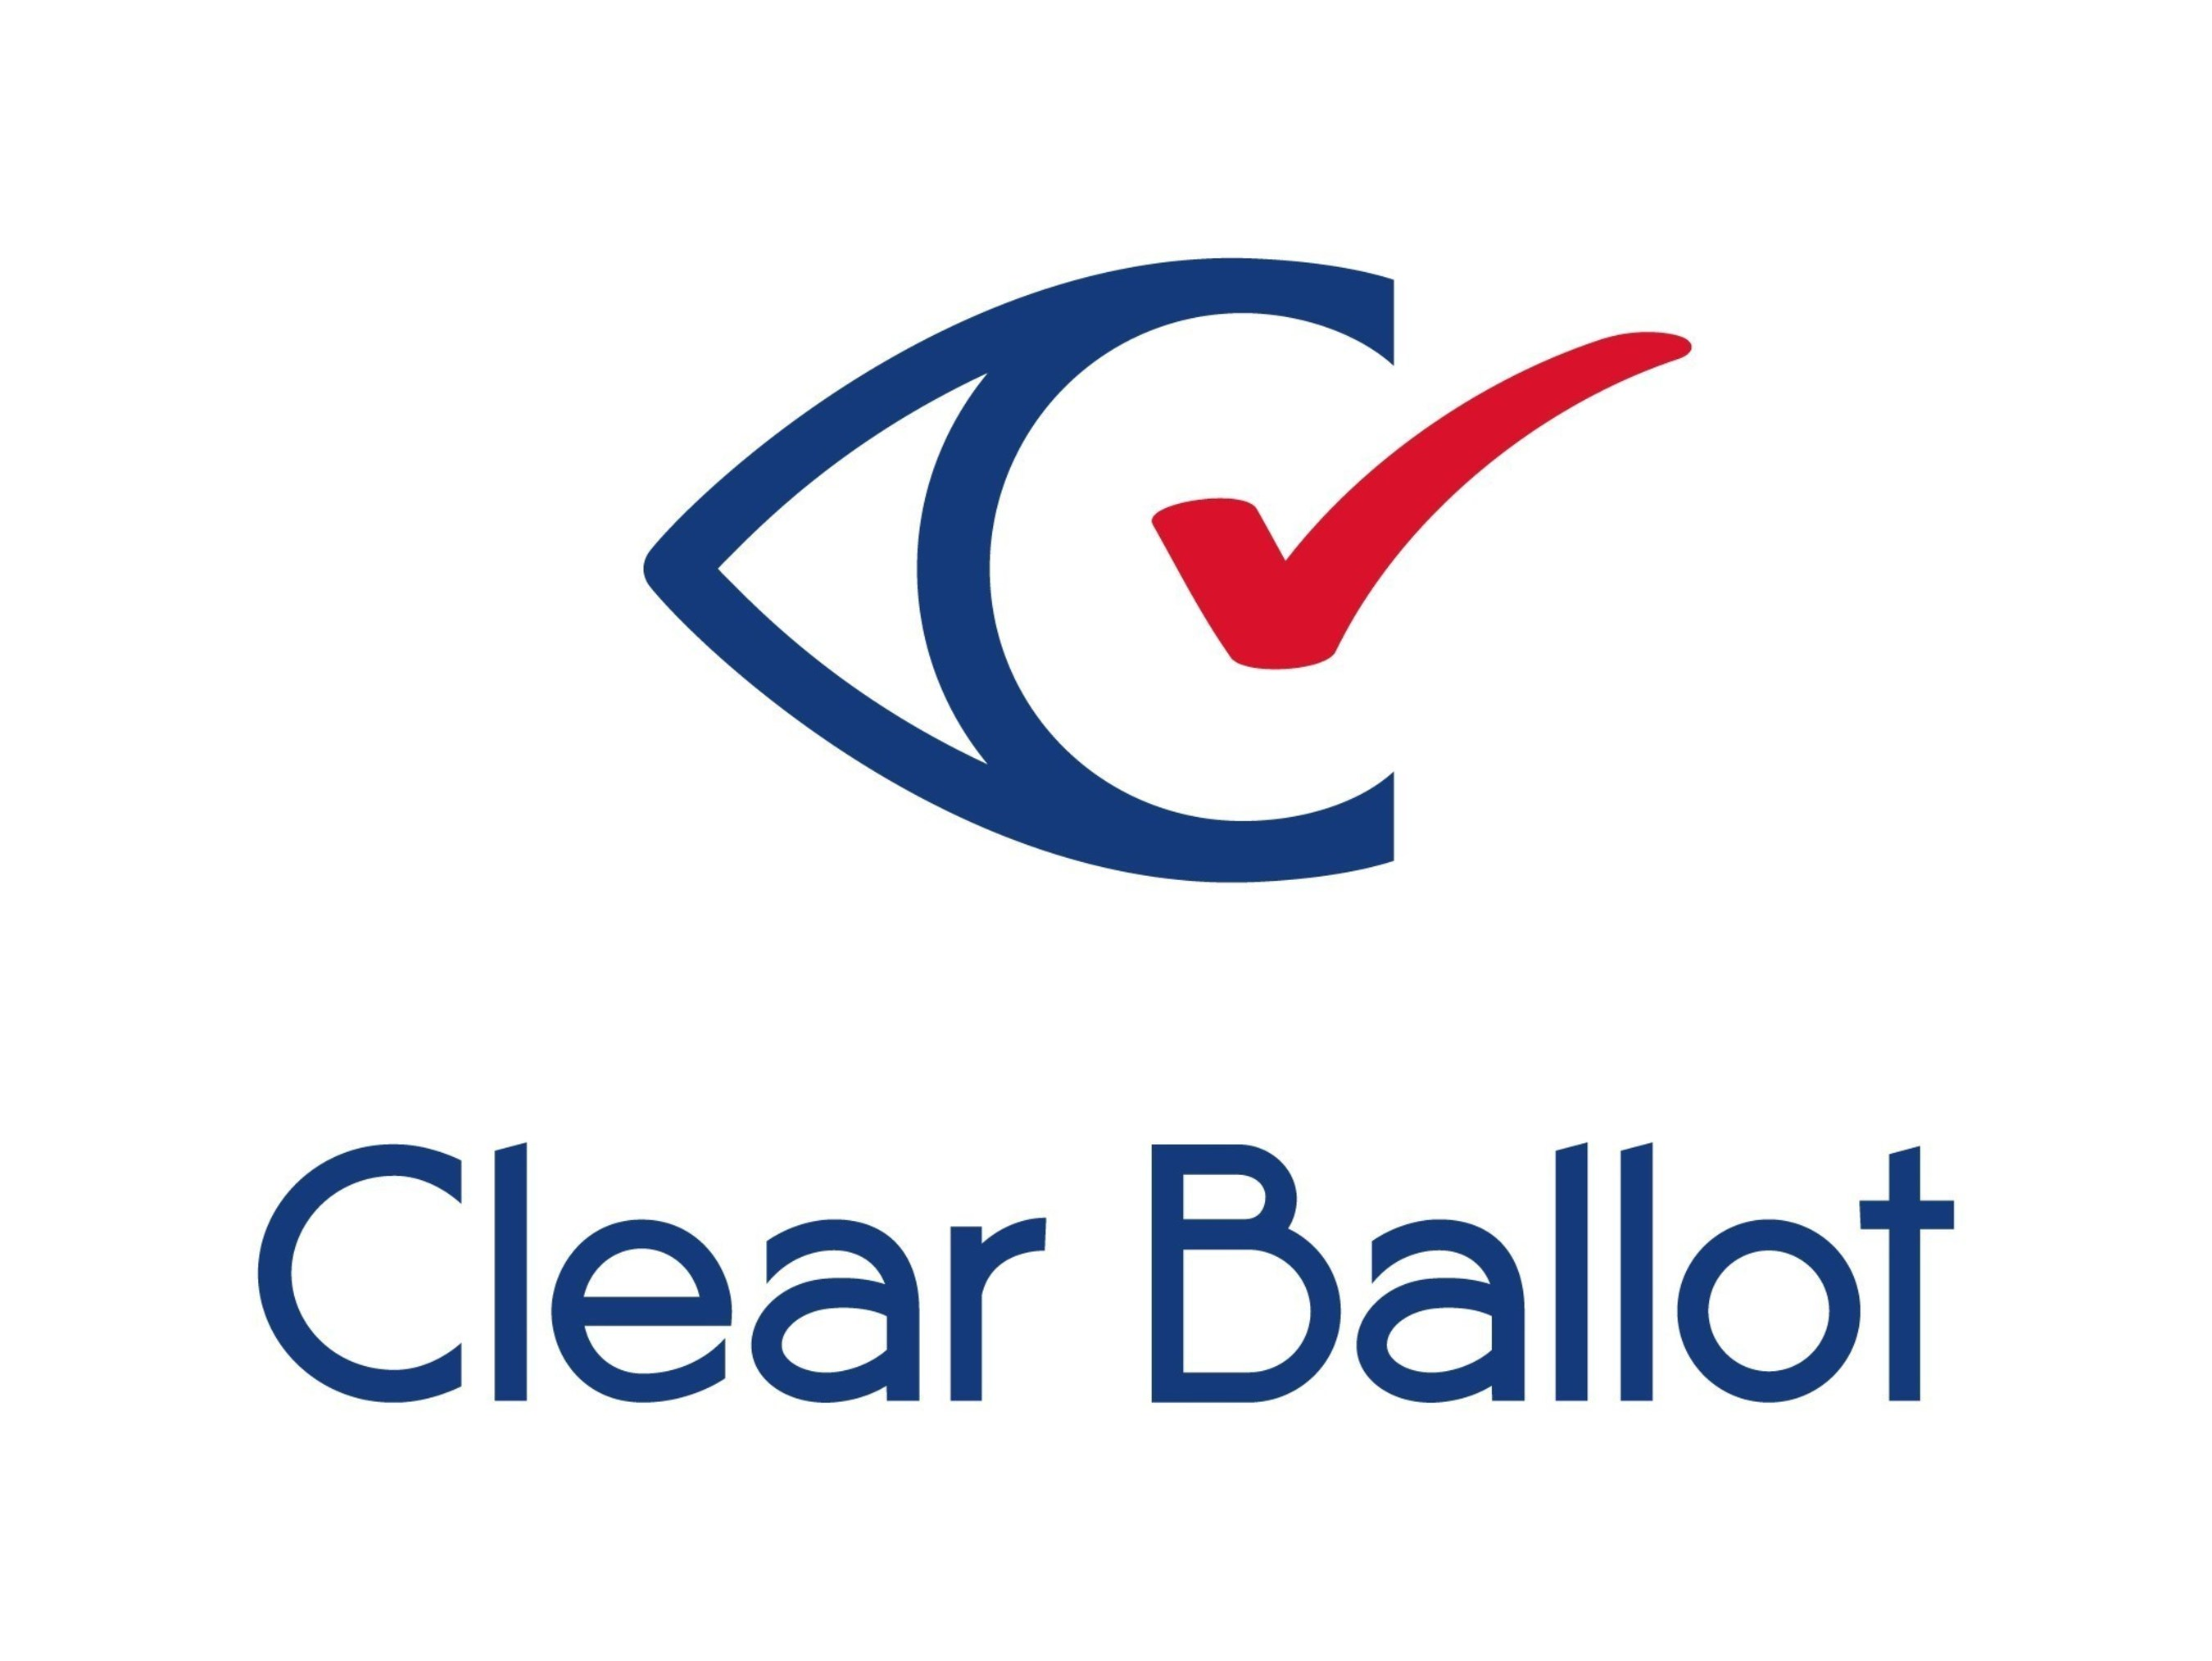 Clear Ballot Expands Senior Leadership Team; Election Technology Company names Jordan Esten as COO and Edwin Smith as Vice President, Products